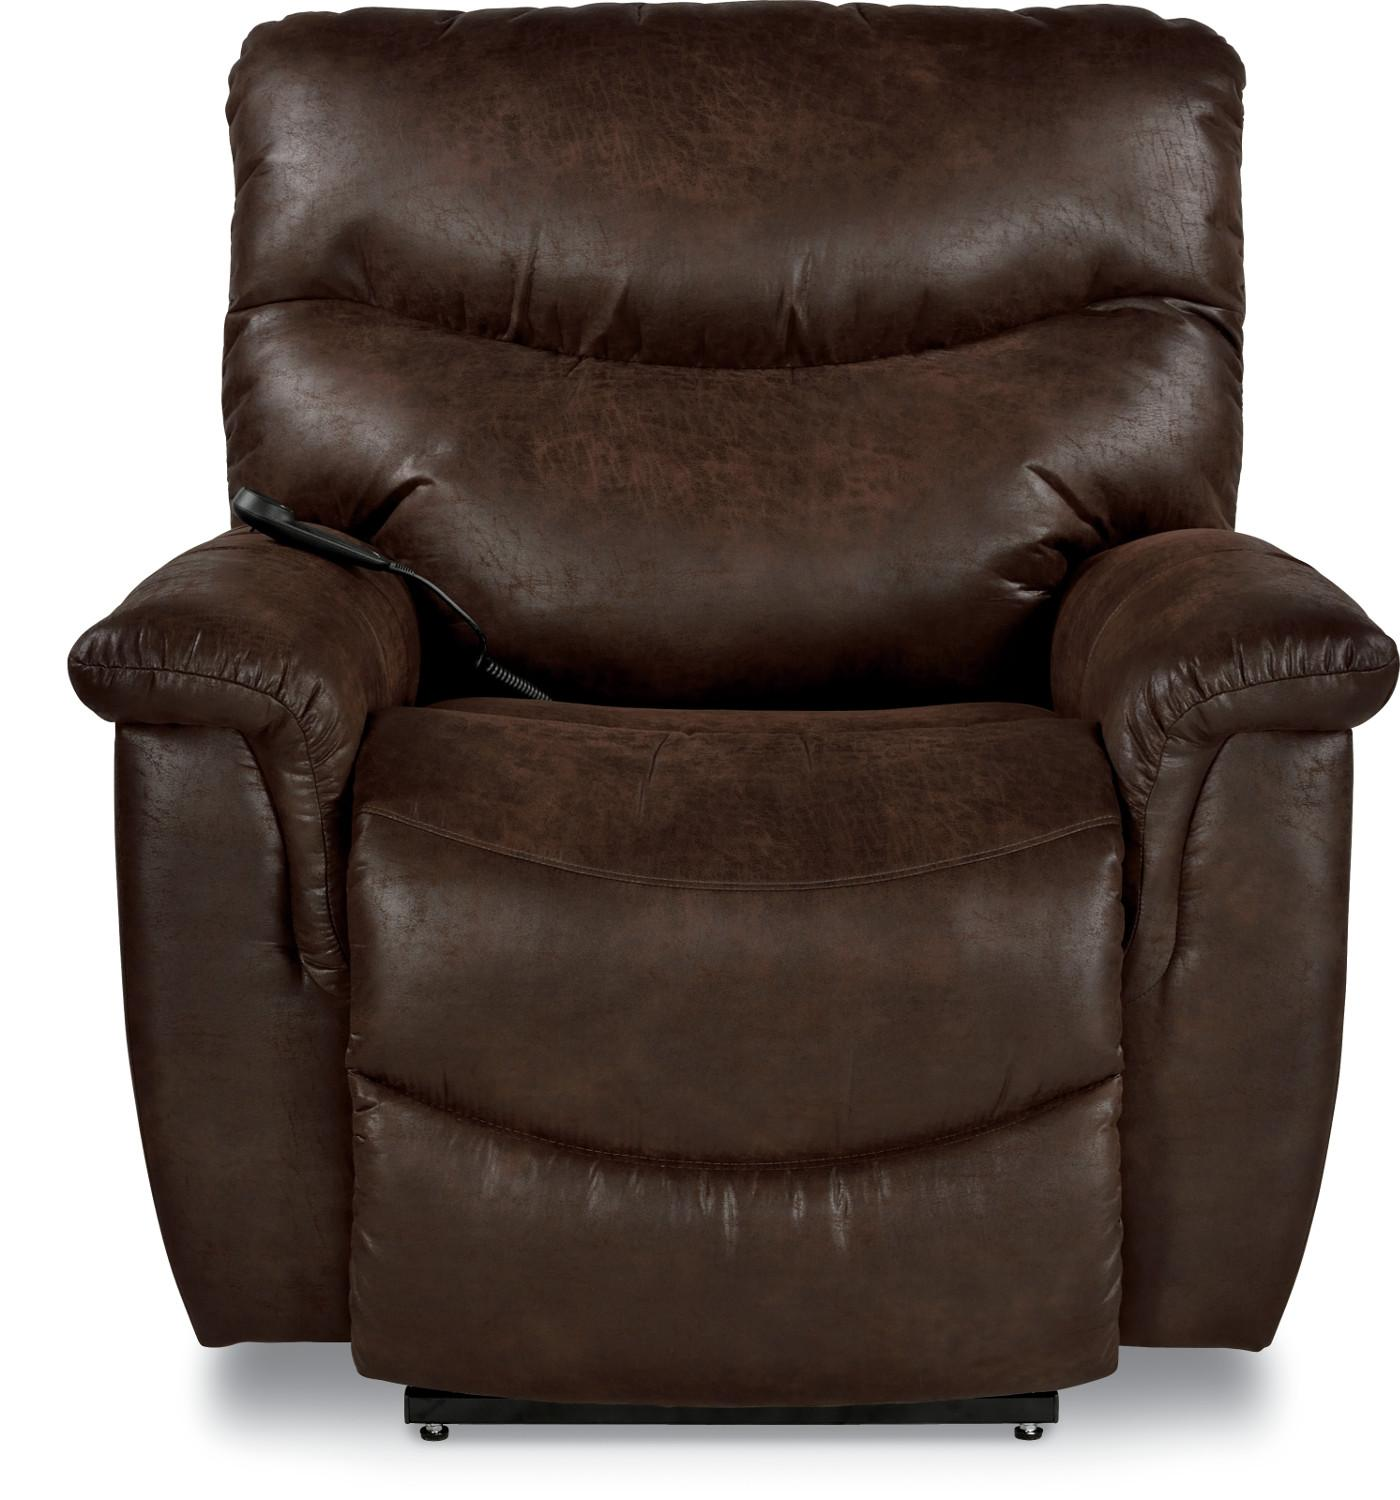 La-Z-Boy James Power La-Z-Time® Recliner  sc 1 st  Johnny Janosik & Recliners | Delaware Maryland Virginia Delmarva Recliners Store ... islam-shia.org